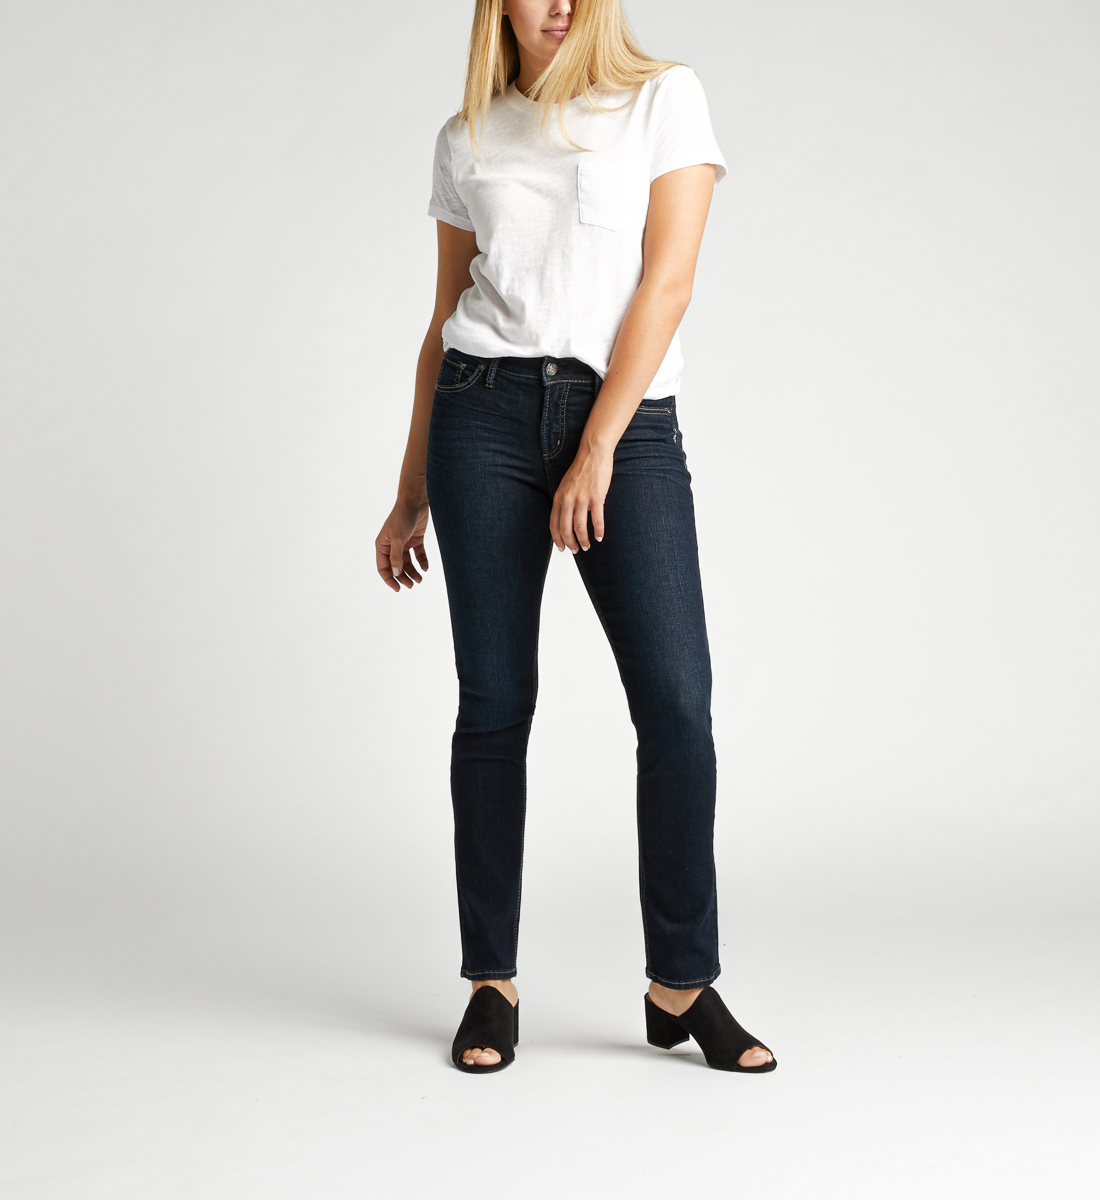 Silver Jeans Avery High Rise Straight Leg Jeans